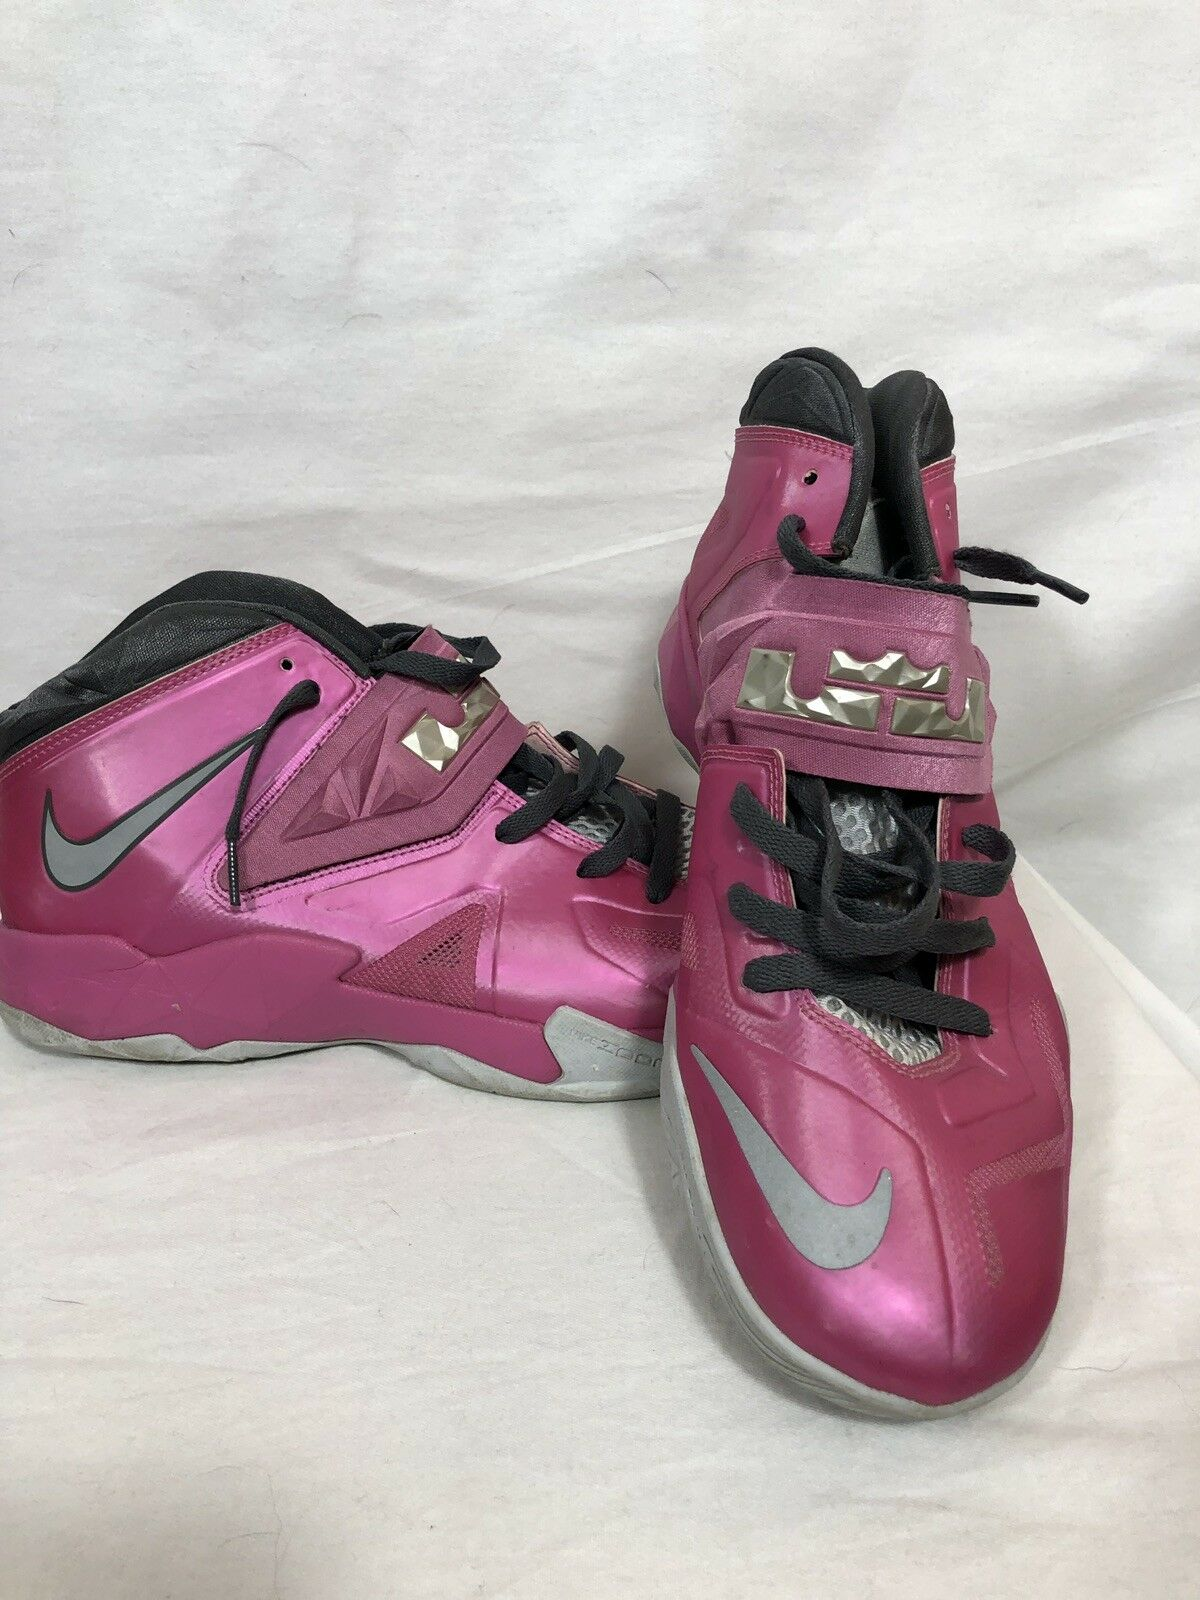 a6a63e3cb682 Nike Zoom Lebron James Breast Cancer Awareness Pink Basketball shoes shoes  shoes Mens 11.5 15b031